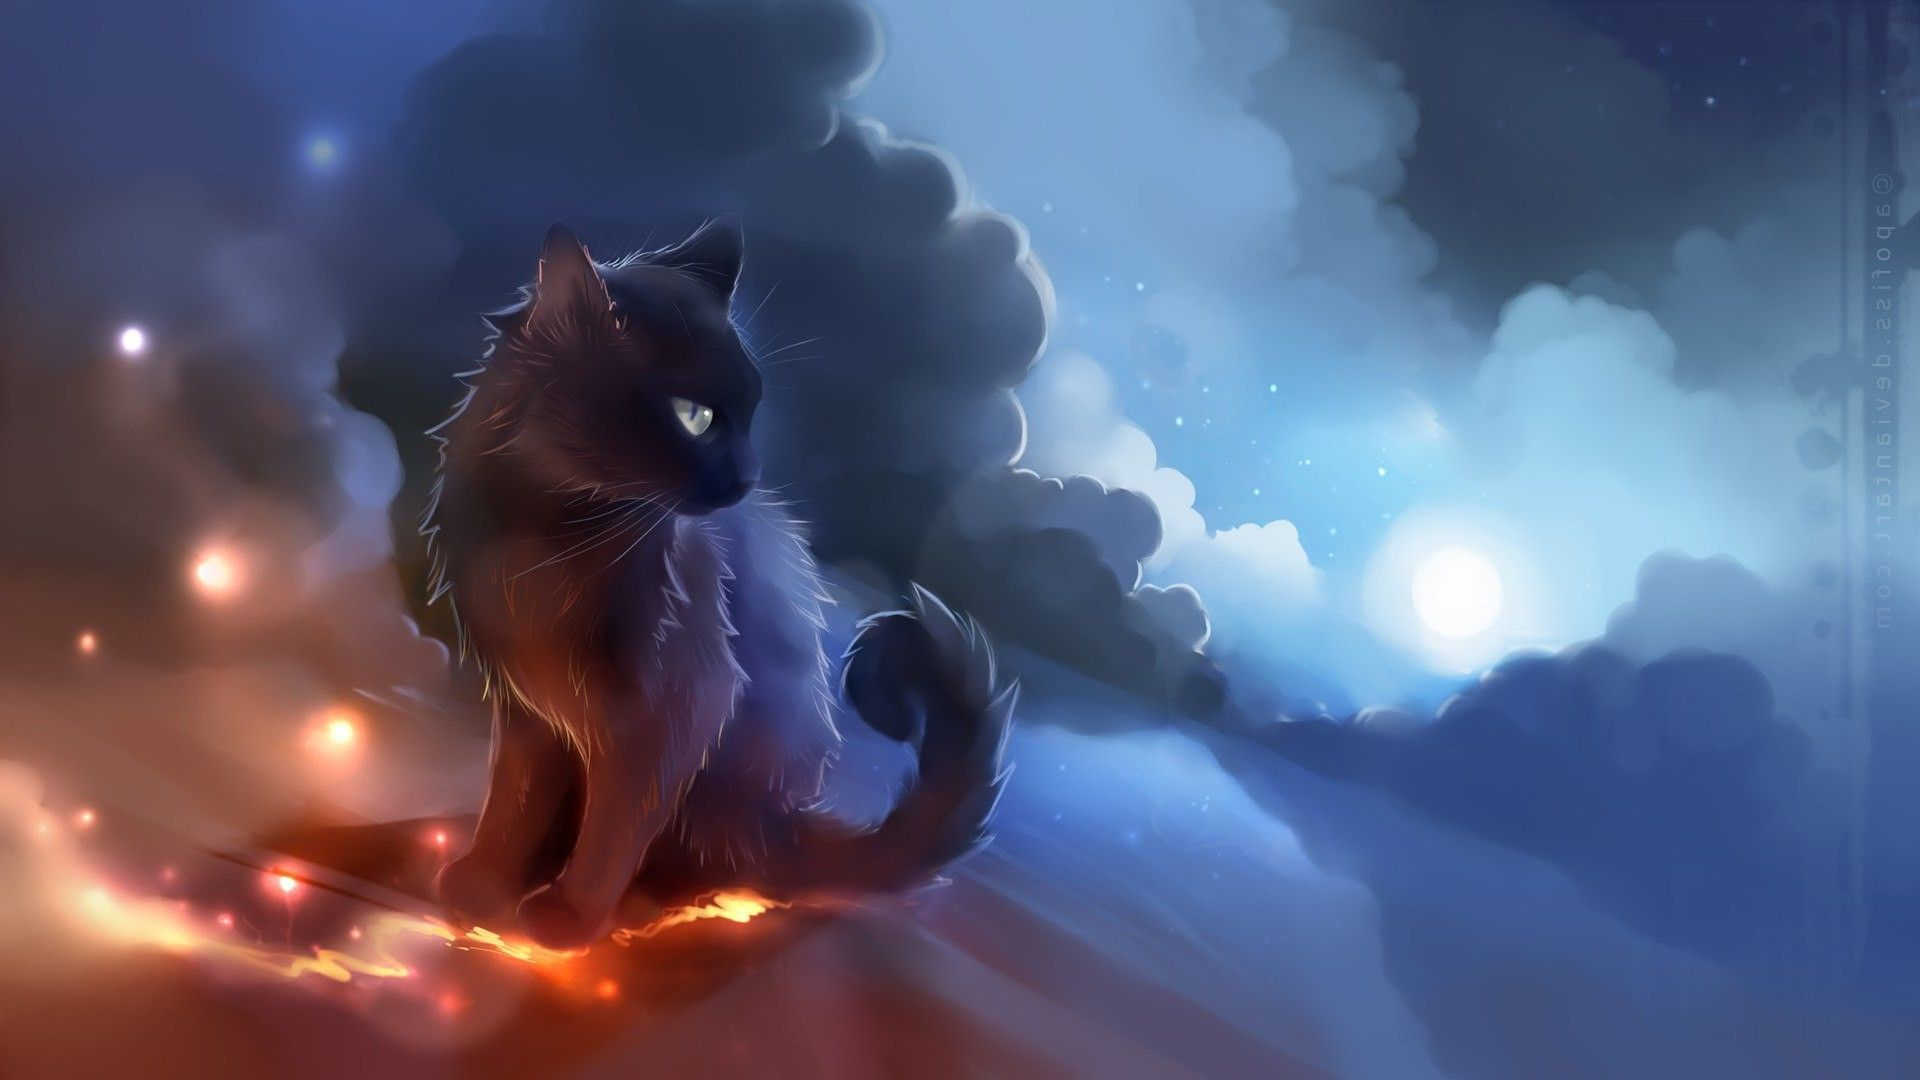 1920x1080 Warrior Cat Wallpapers Backgrounds 56 Images With